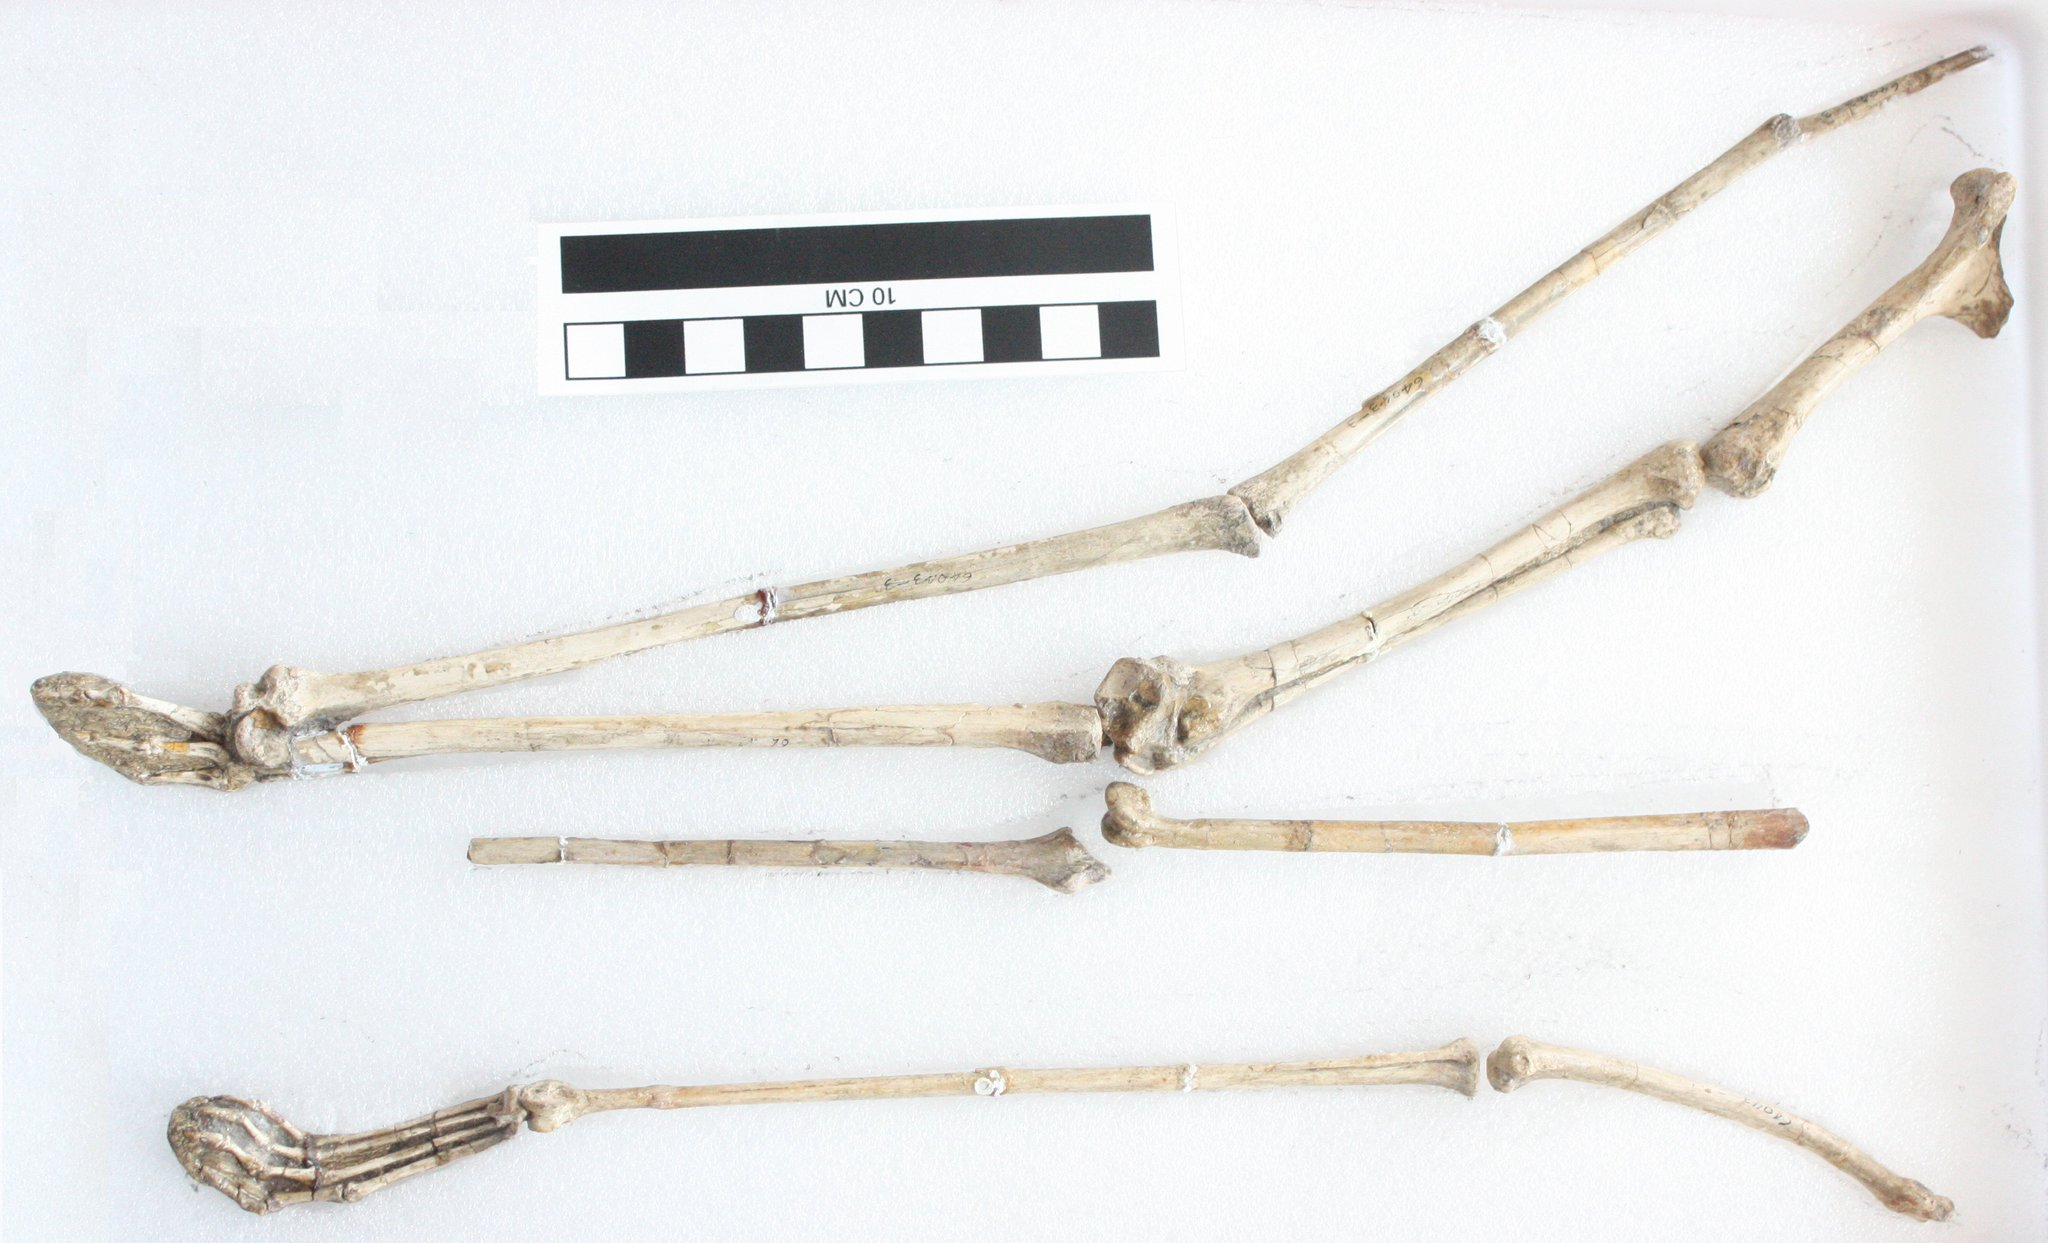 A superb set of limbs from one specimen of Noripterus